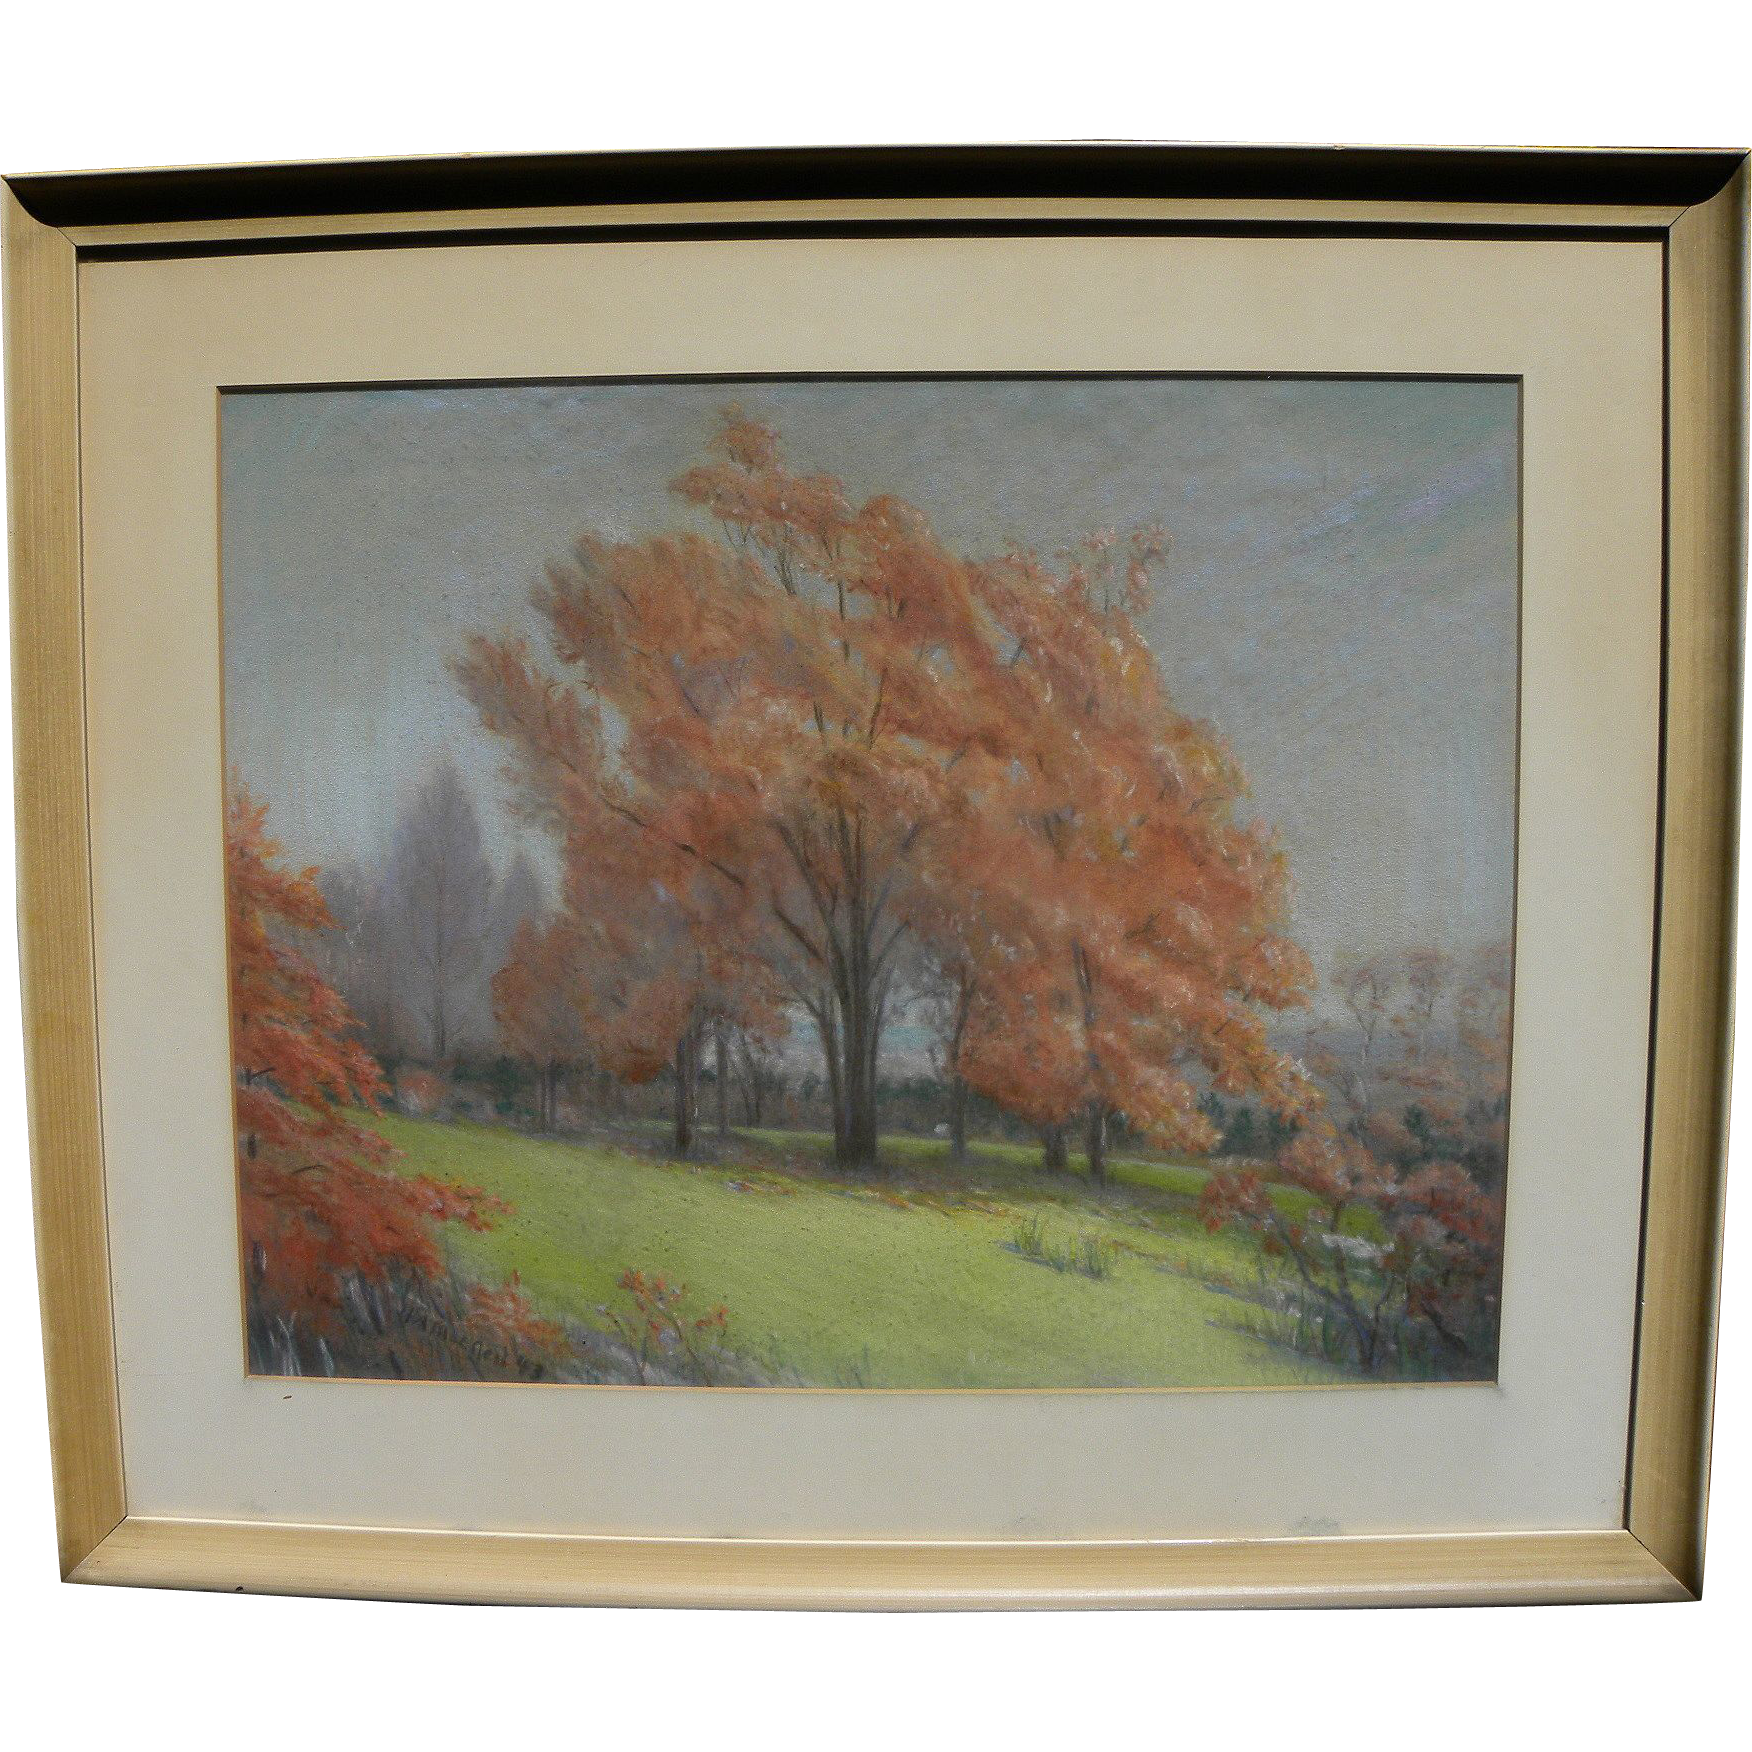 HERMON ATKINS MacNEIL (1866-1947) beautiful pastel landscape by National Academician famous American sculptor